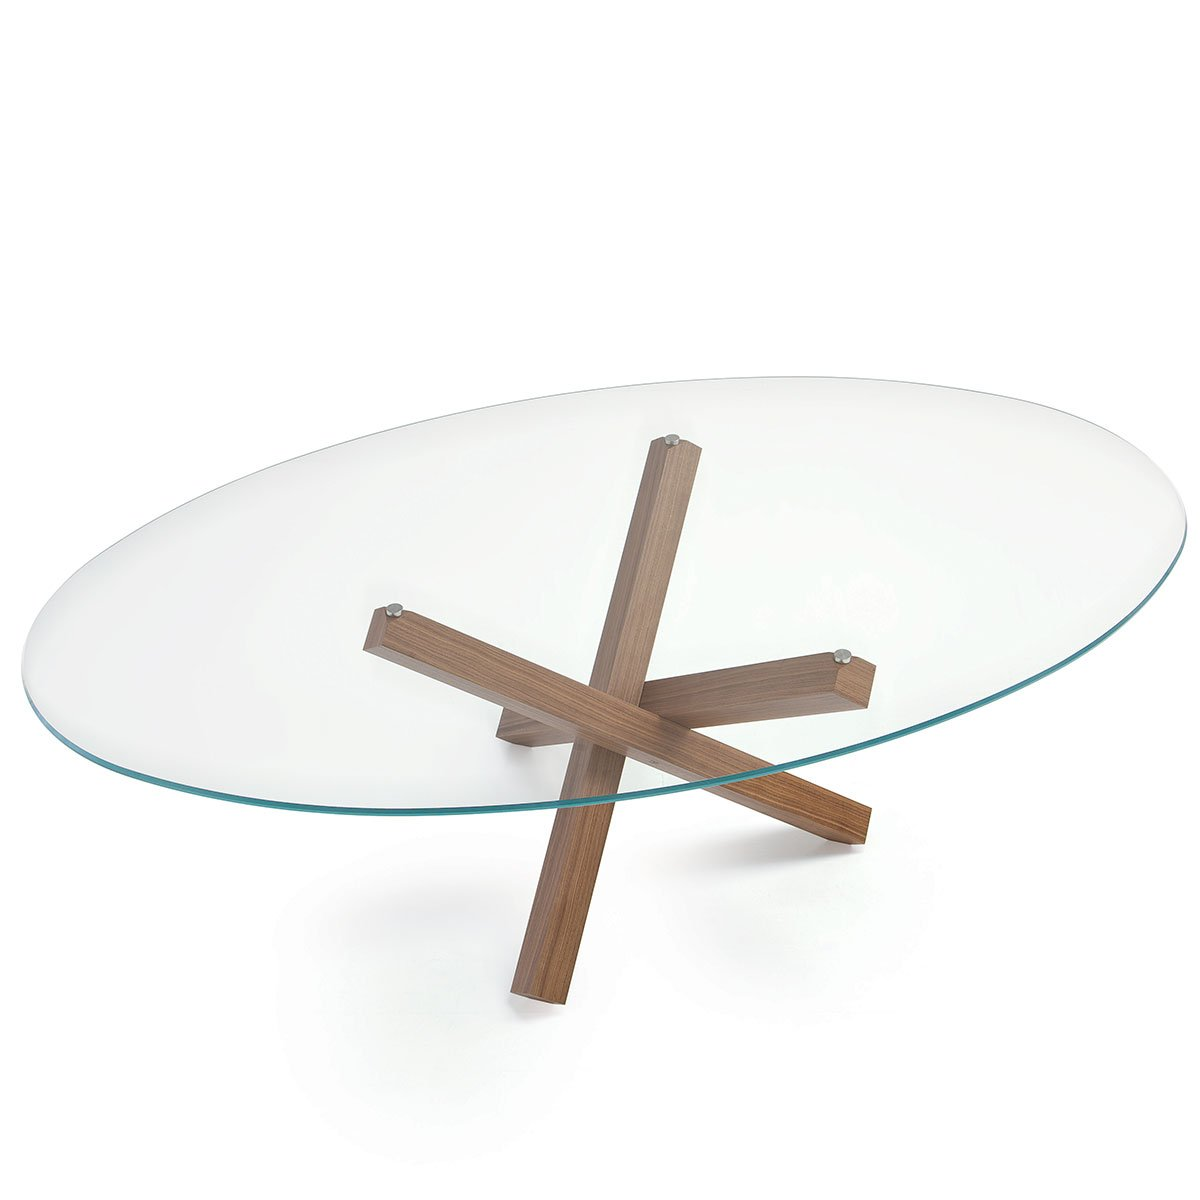 Sovet Italia Aikido Dining Table Klarity Glass Furniture : Aikido oval Glass Dining Table by sovet Italia 3 from glassfurniture.co.uk size 1200 x 1200 jpeg 16kB